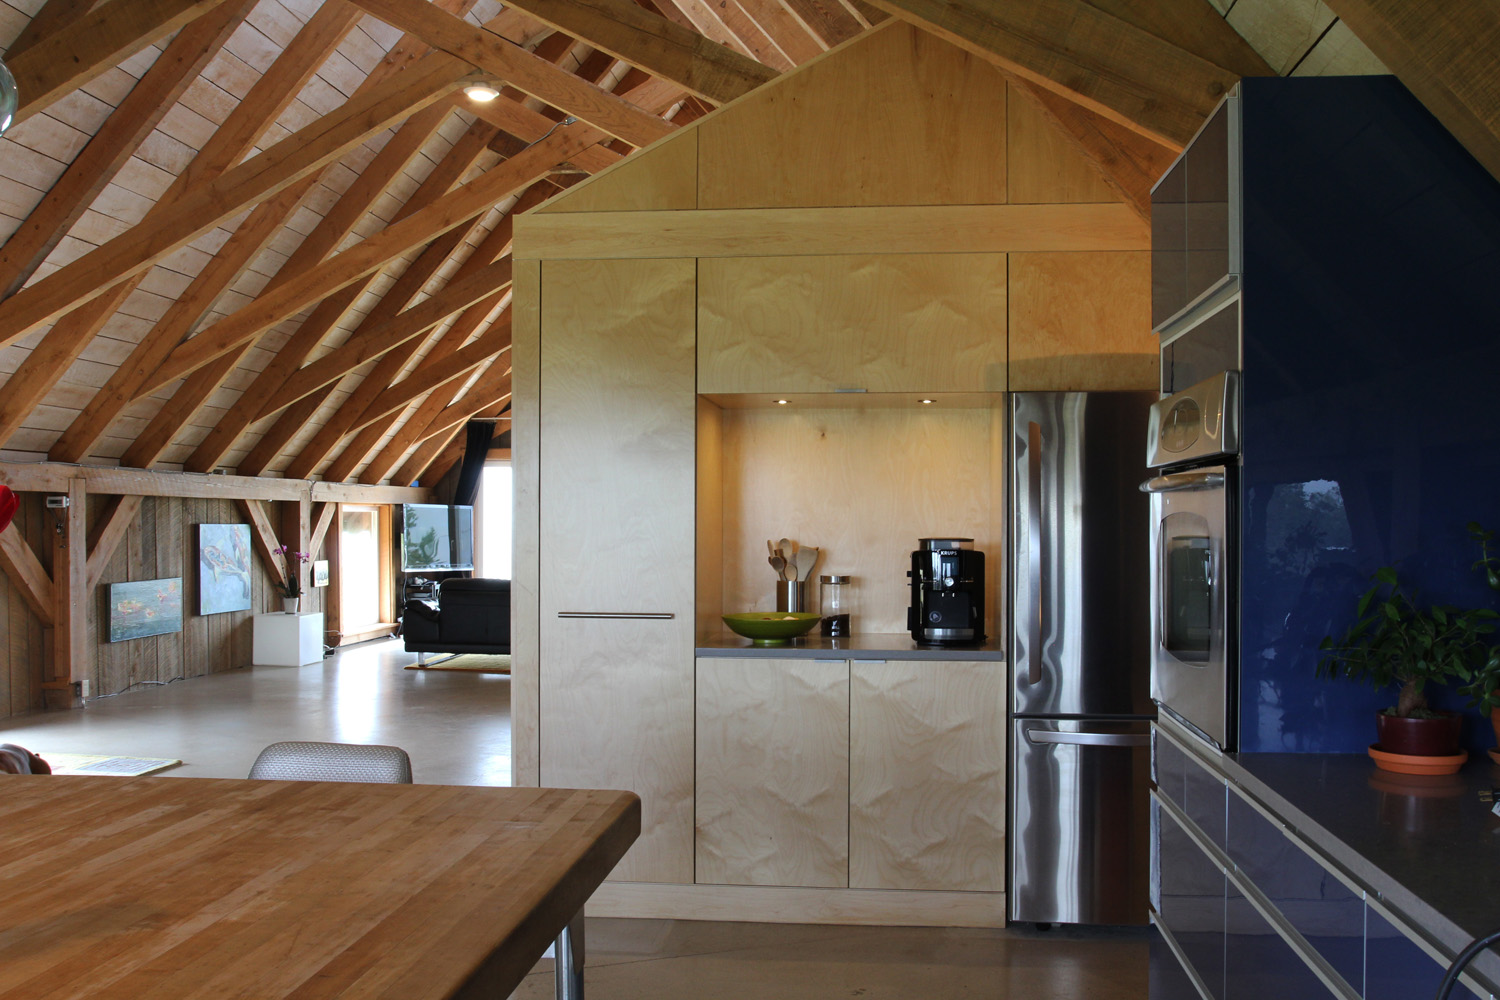 houdinidesign_ARCHITECTS_Ritchie-Gidney_Residence_Sandy-Cove_Digby_Acadian+Timber_Frame_Modern_Renovation_Kitchen_Nook_01.jpg